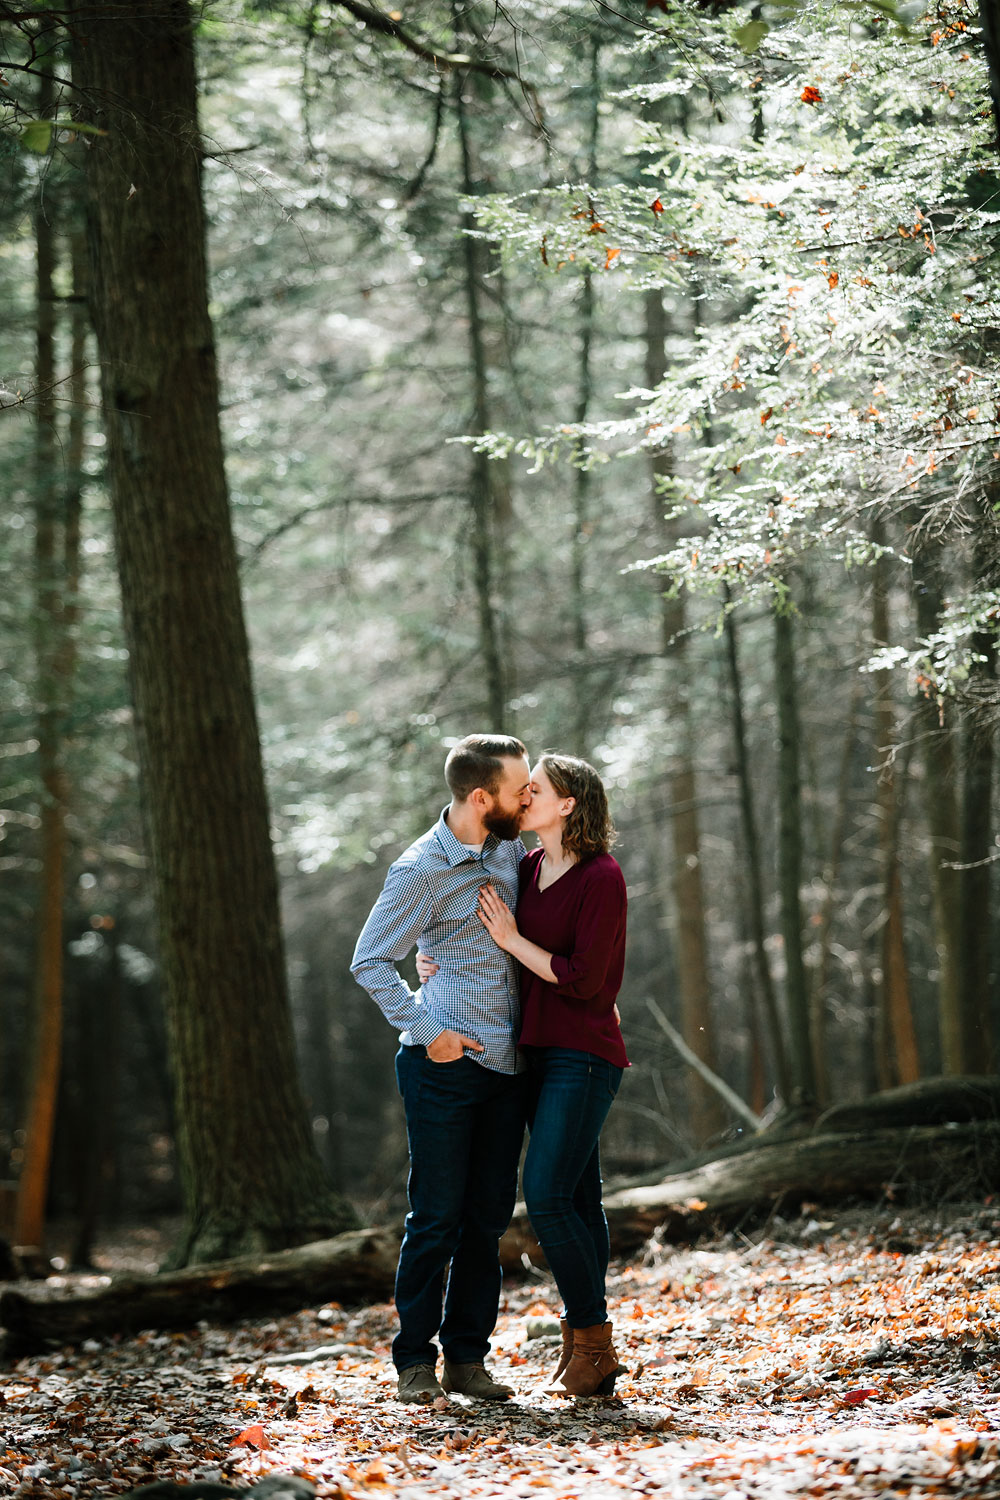 cuyahoga-valley-national-park-engagement-photography-peninsula-ohio-41.jpg